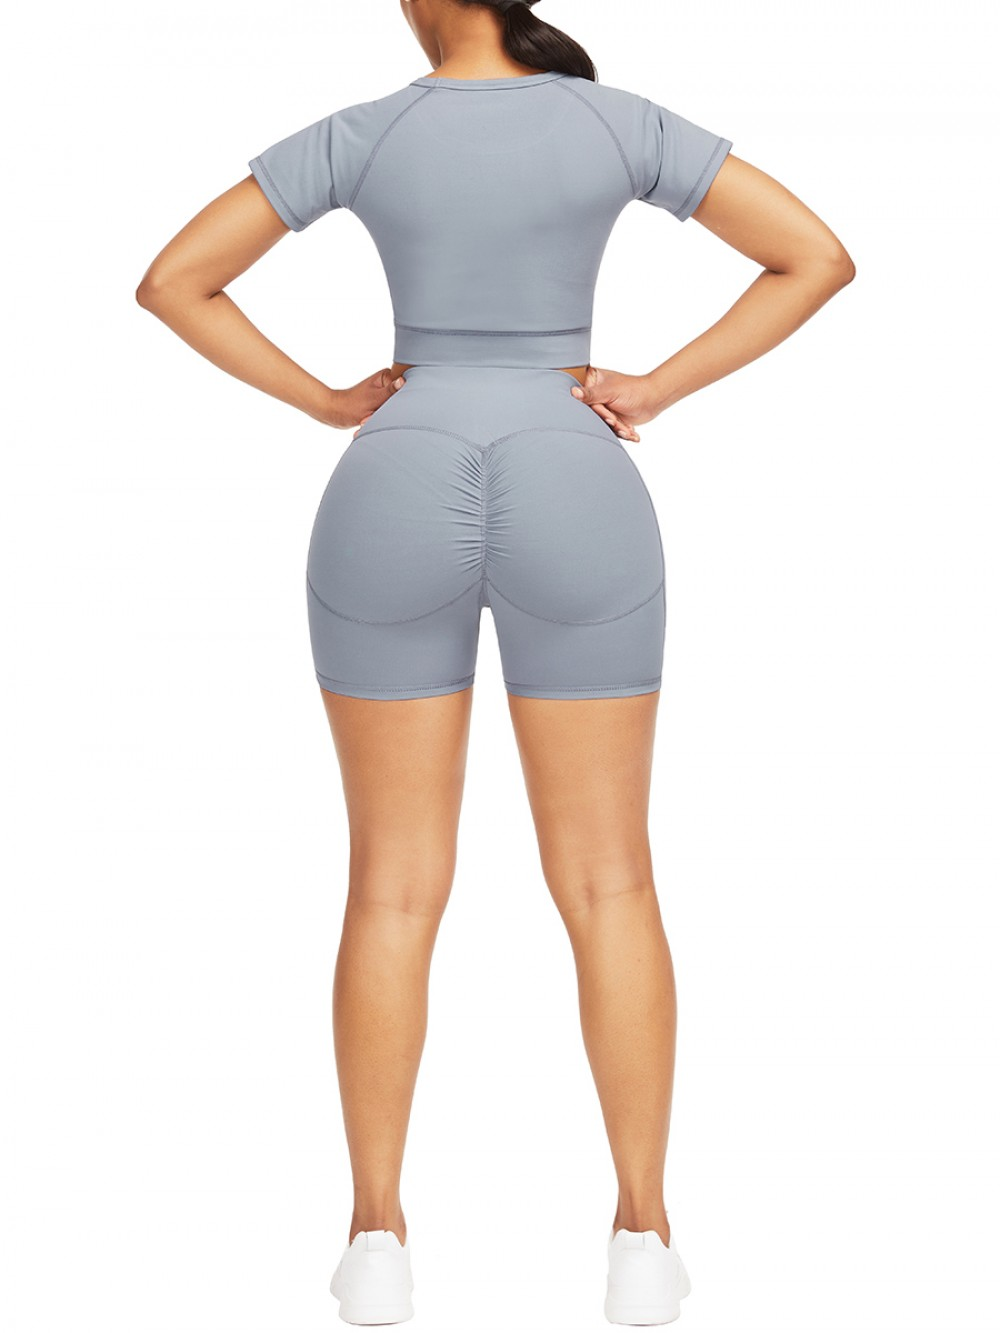 Cool Light Blue Crop Top High Rise Shorts Pleated For Exercising